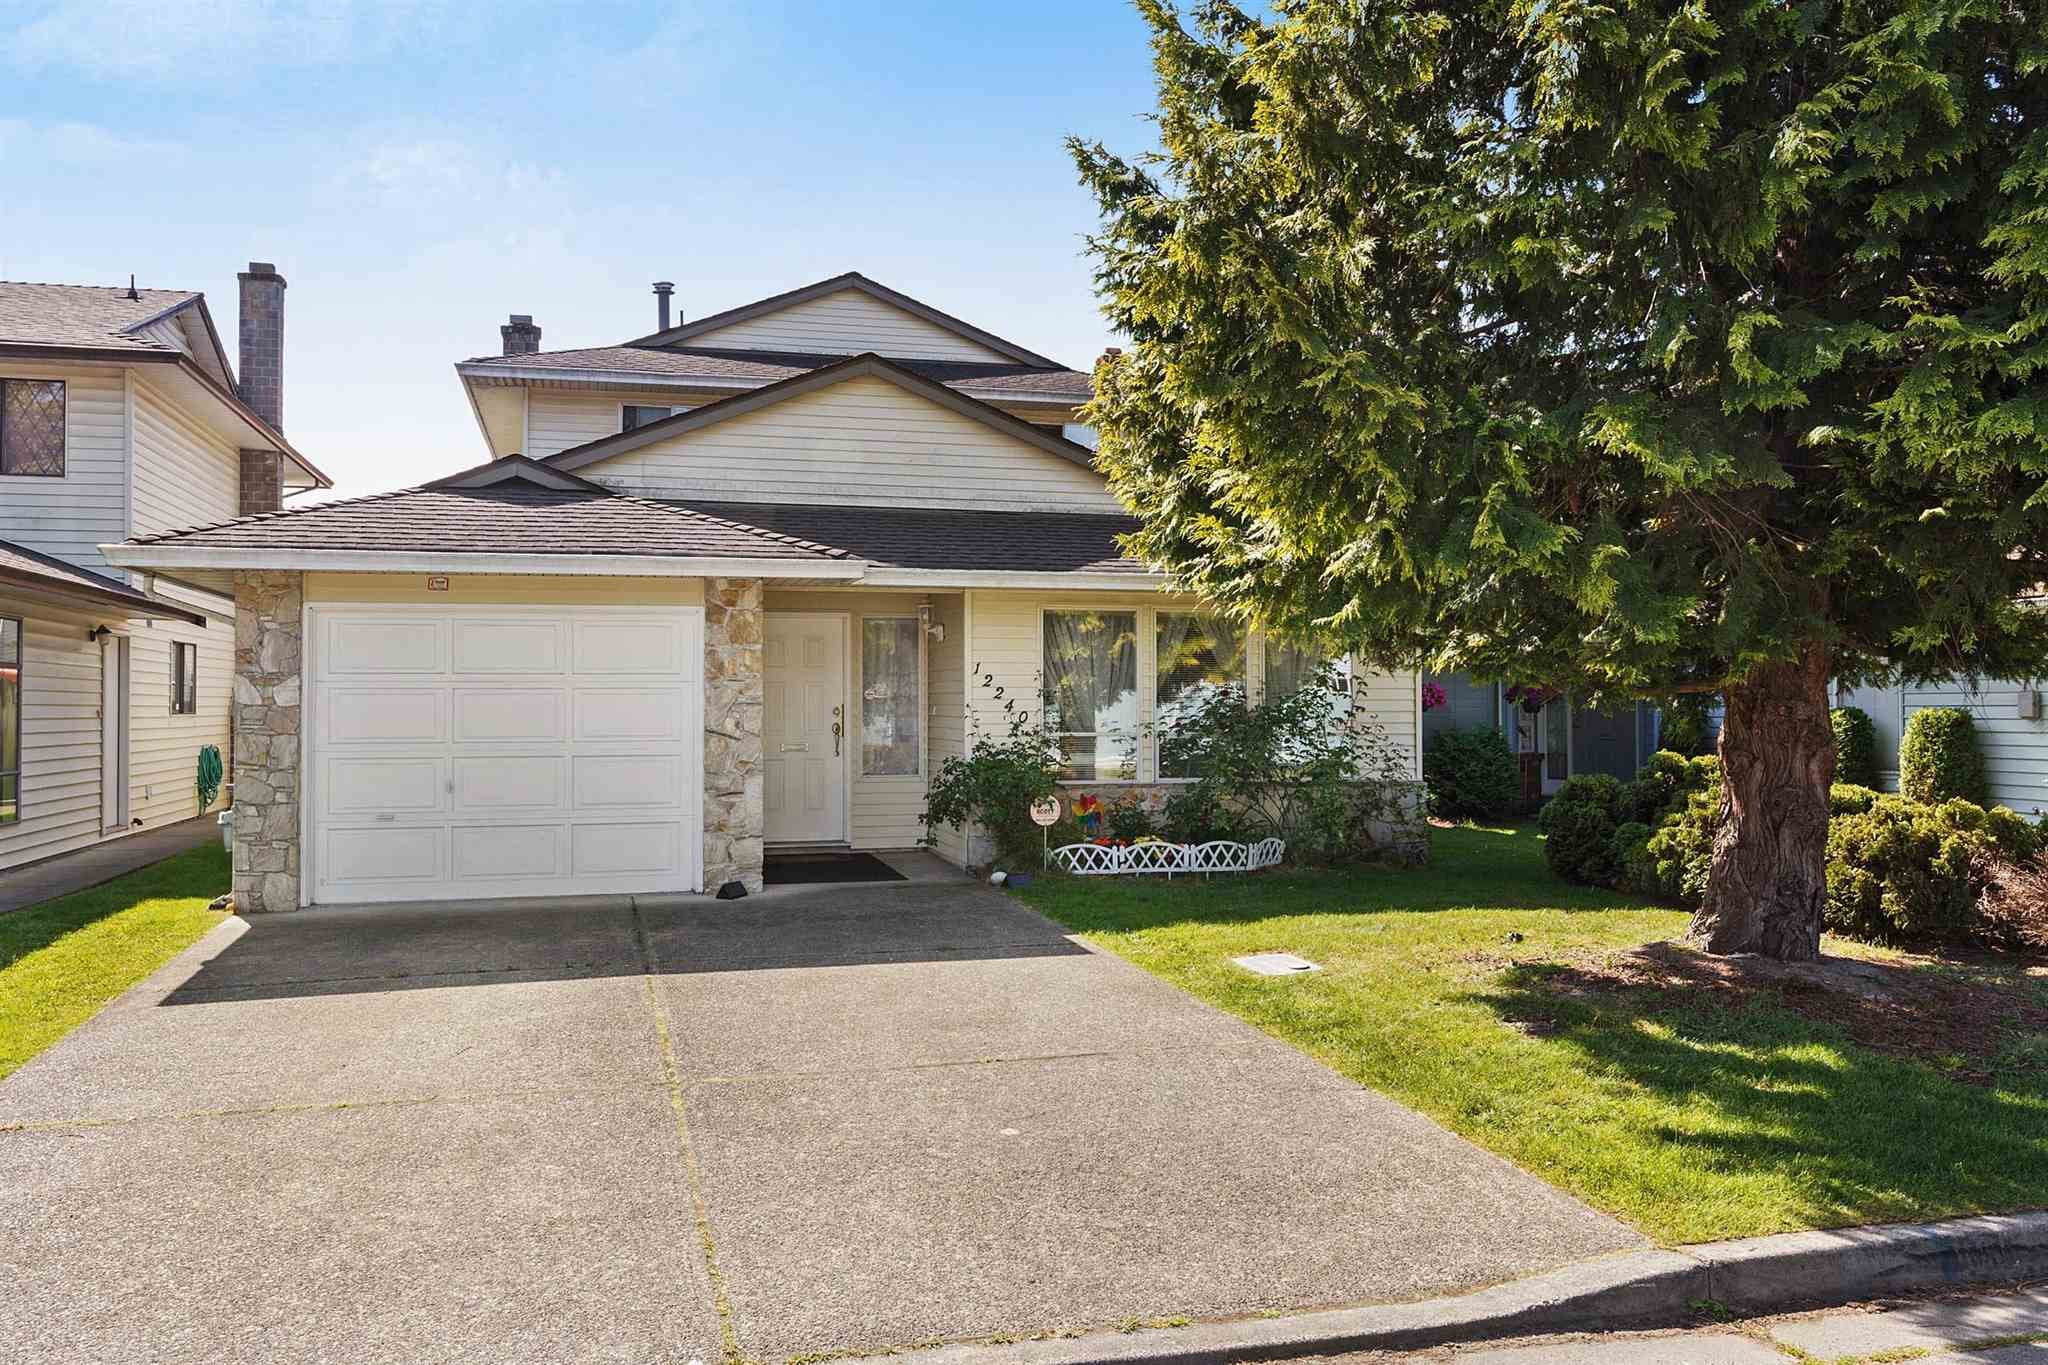 12240 GREENLAND DRIVE - East Cambie House/Single Family for sale, 3 Bedrooms (R2603137)